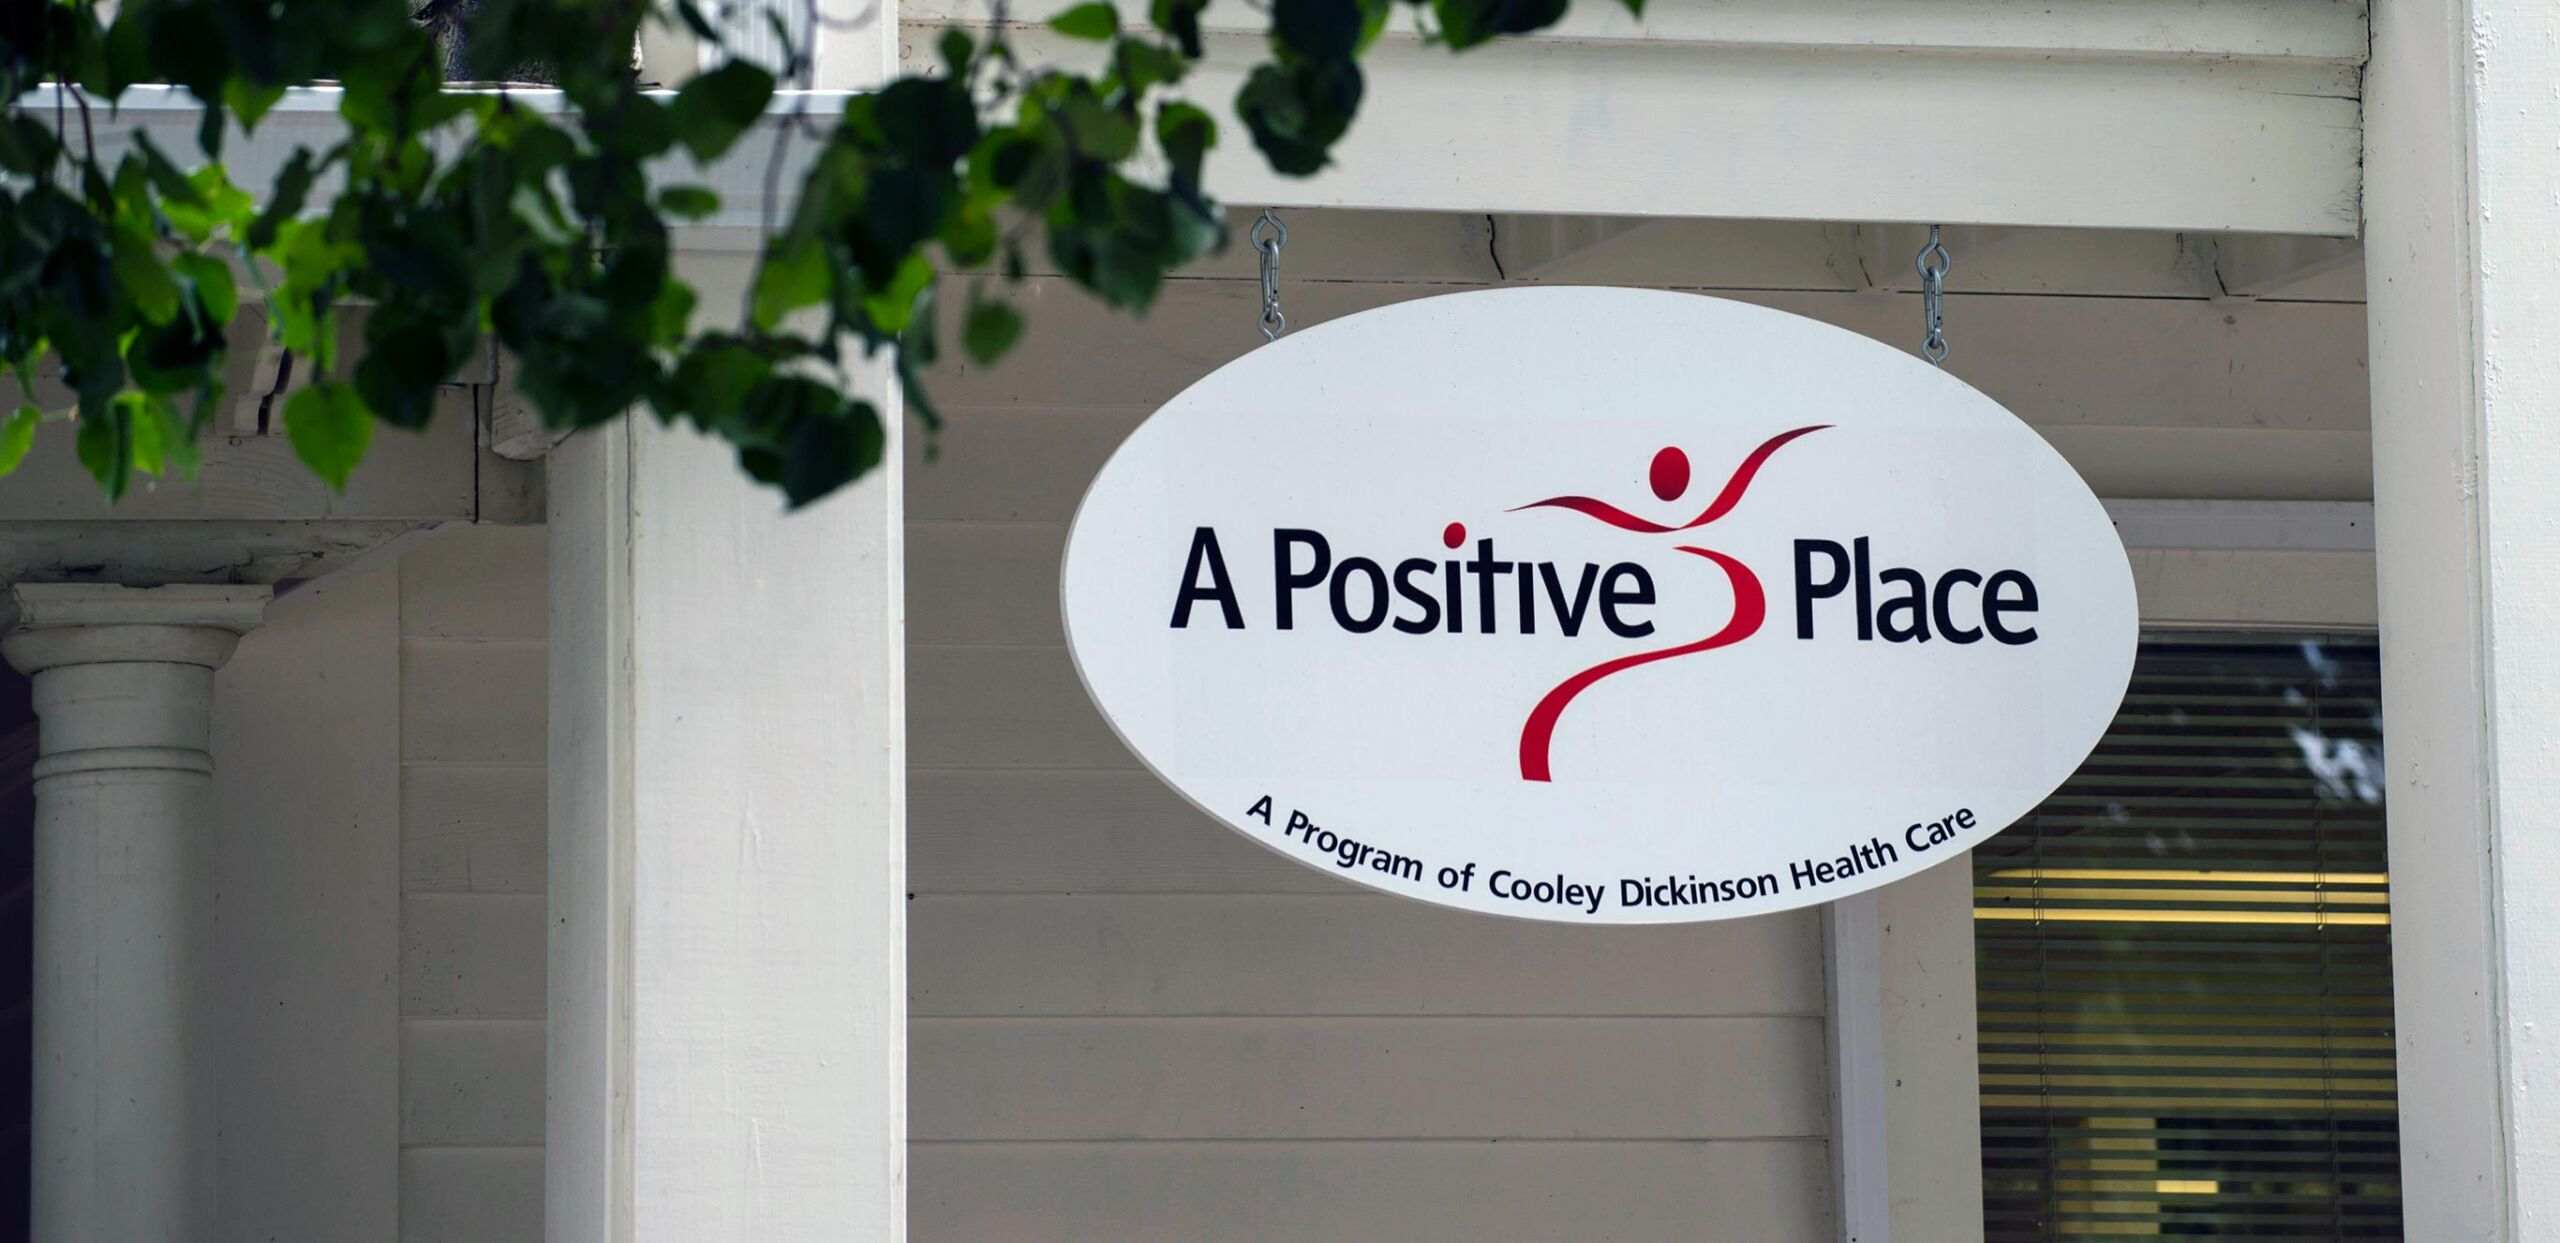 A Positive Place, Living with HIV and AIDS, a program of Cooley Dickinson Hospital, Northampton, MA 01060.